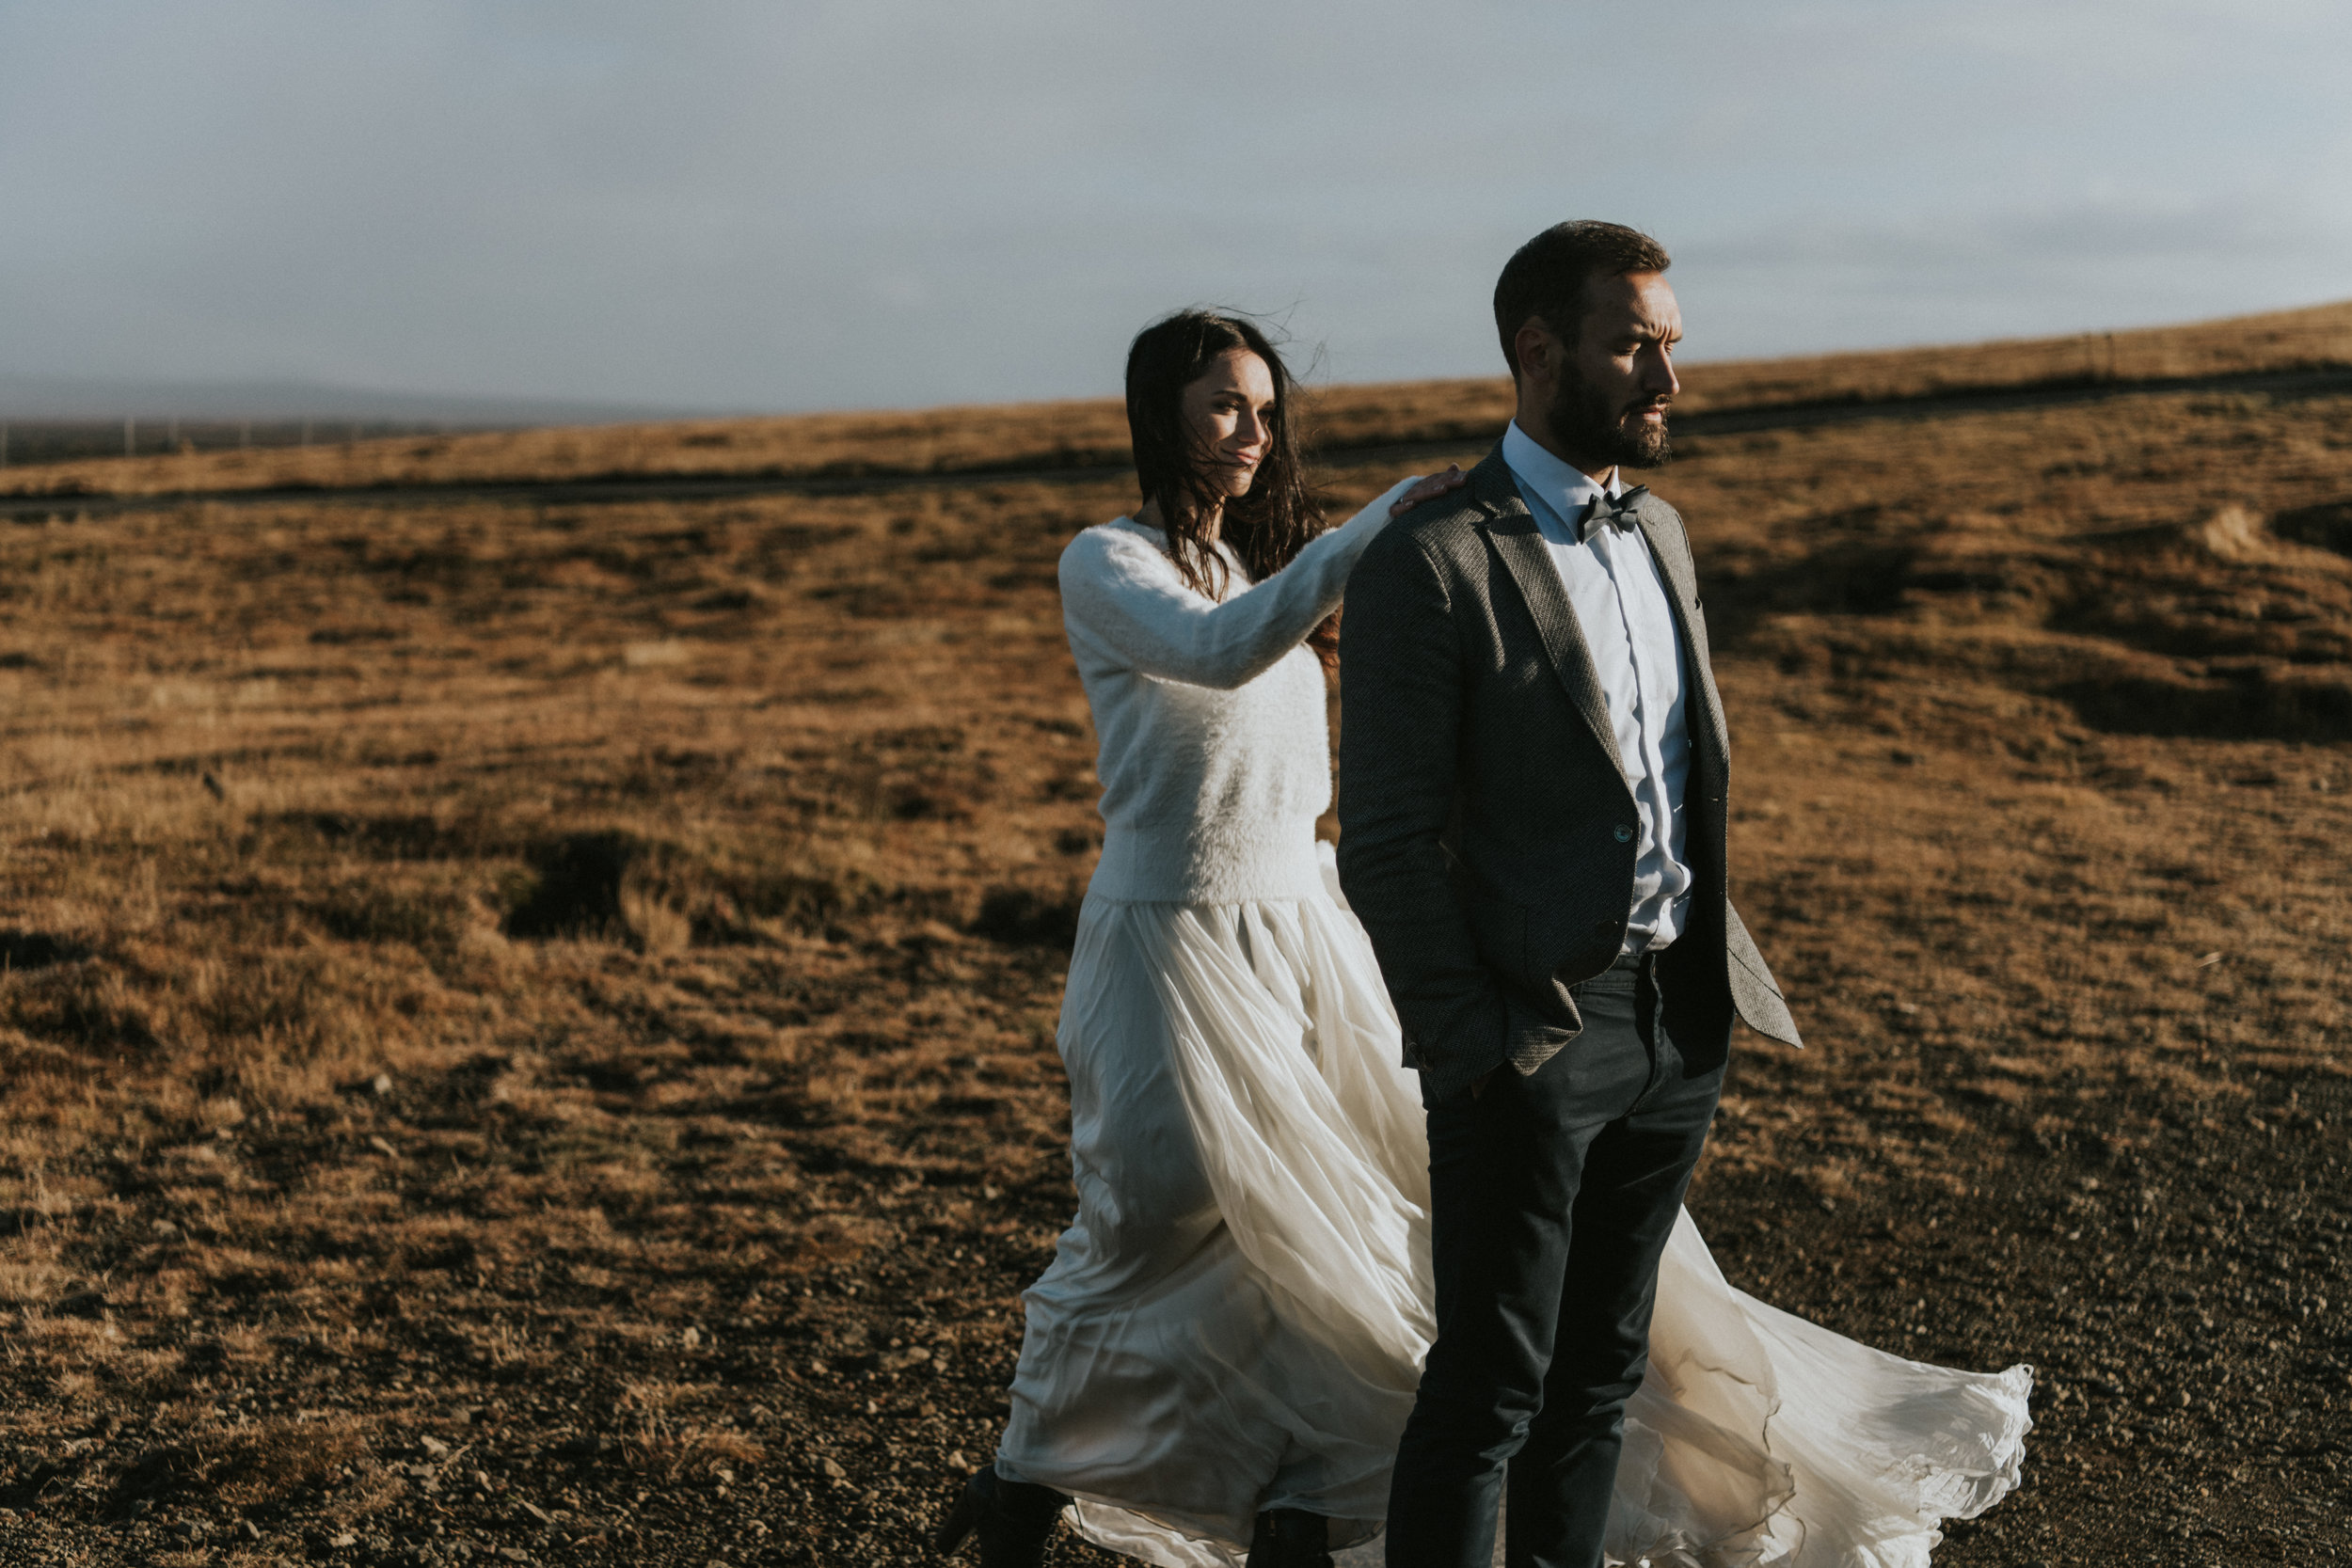 Natalie-Vitaly-Iceland-Elopement-Photographer-Videographer-26